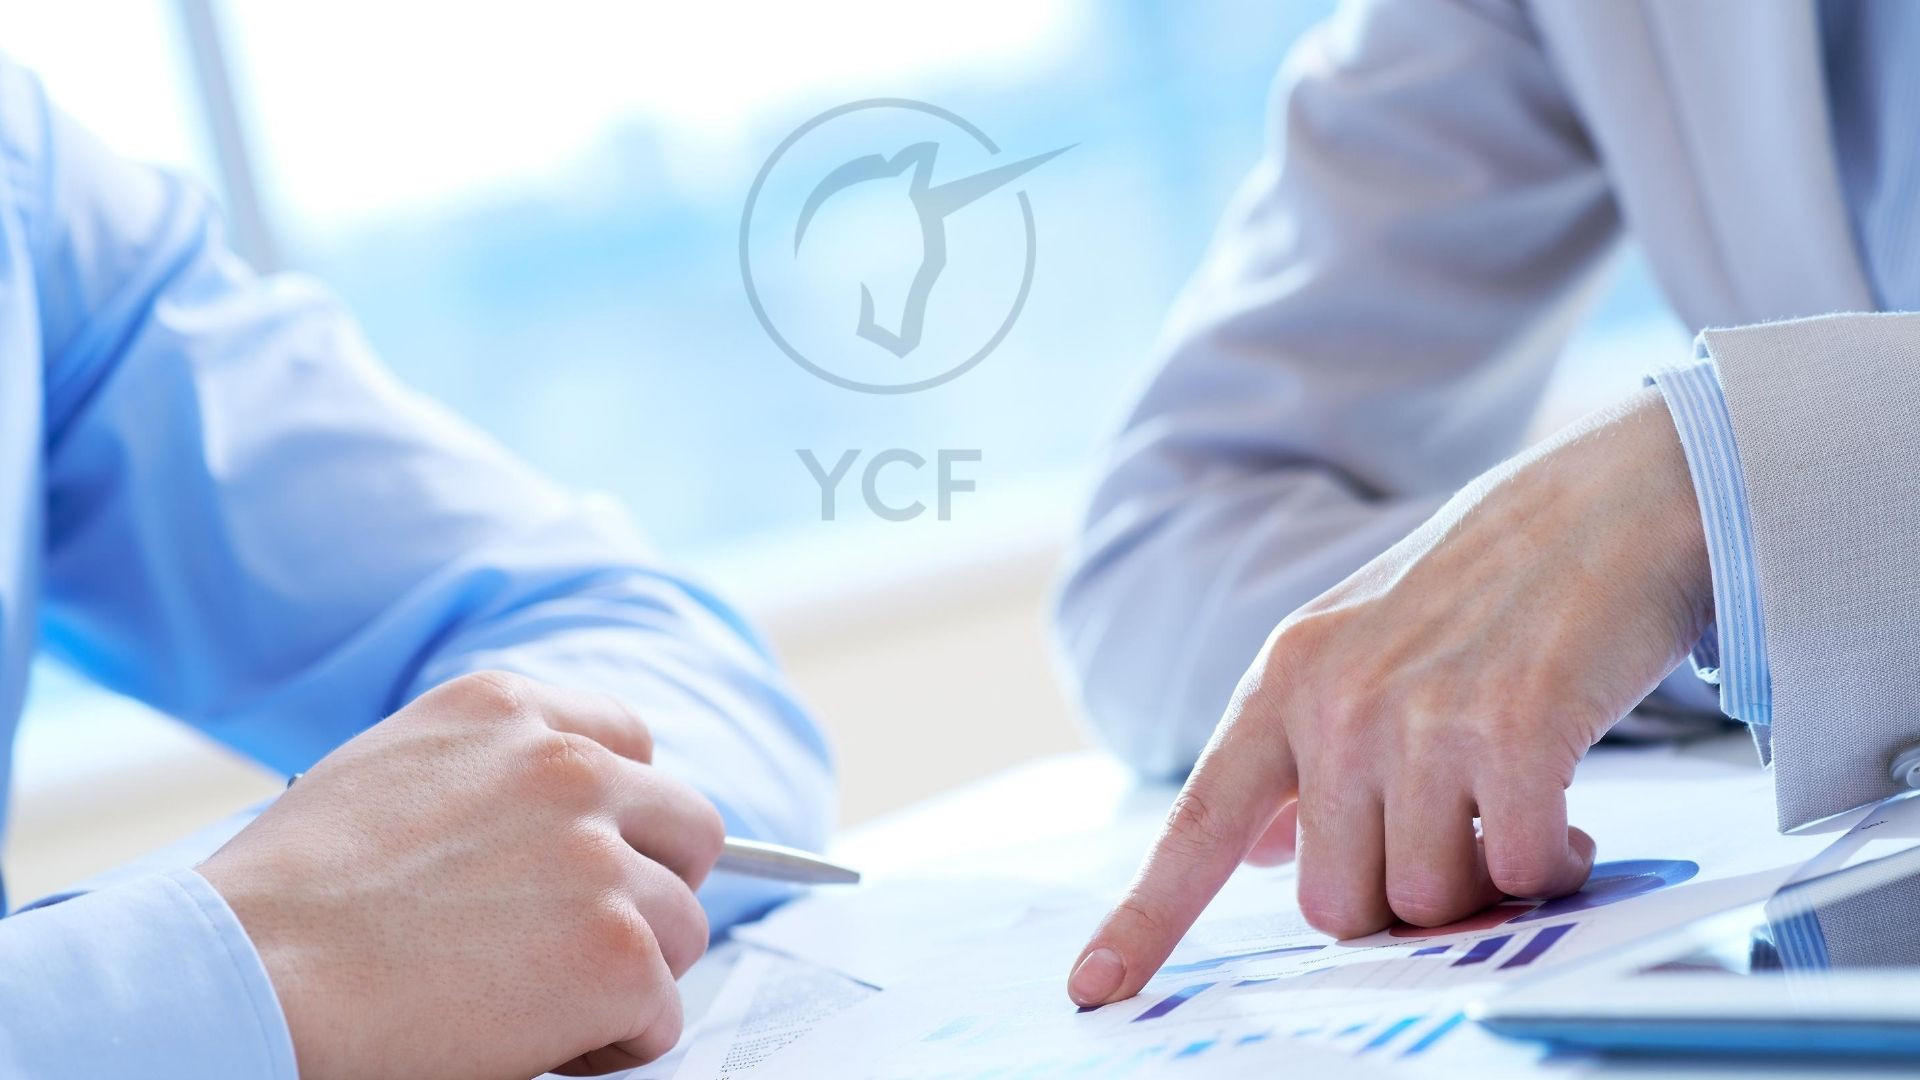 YCF Instructor Development Progam